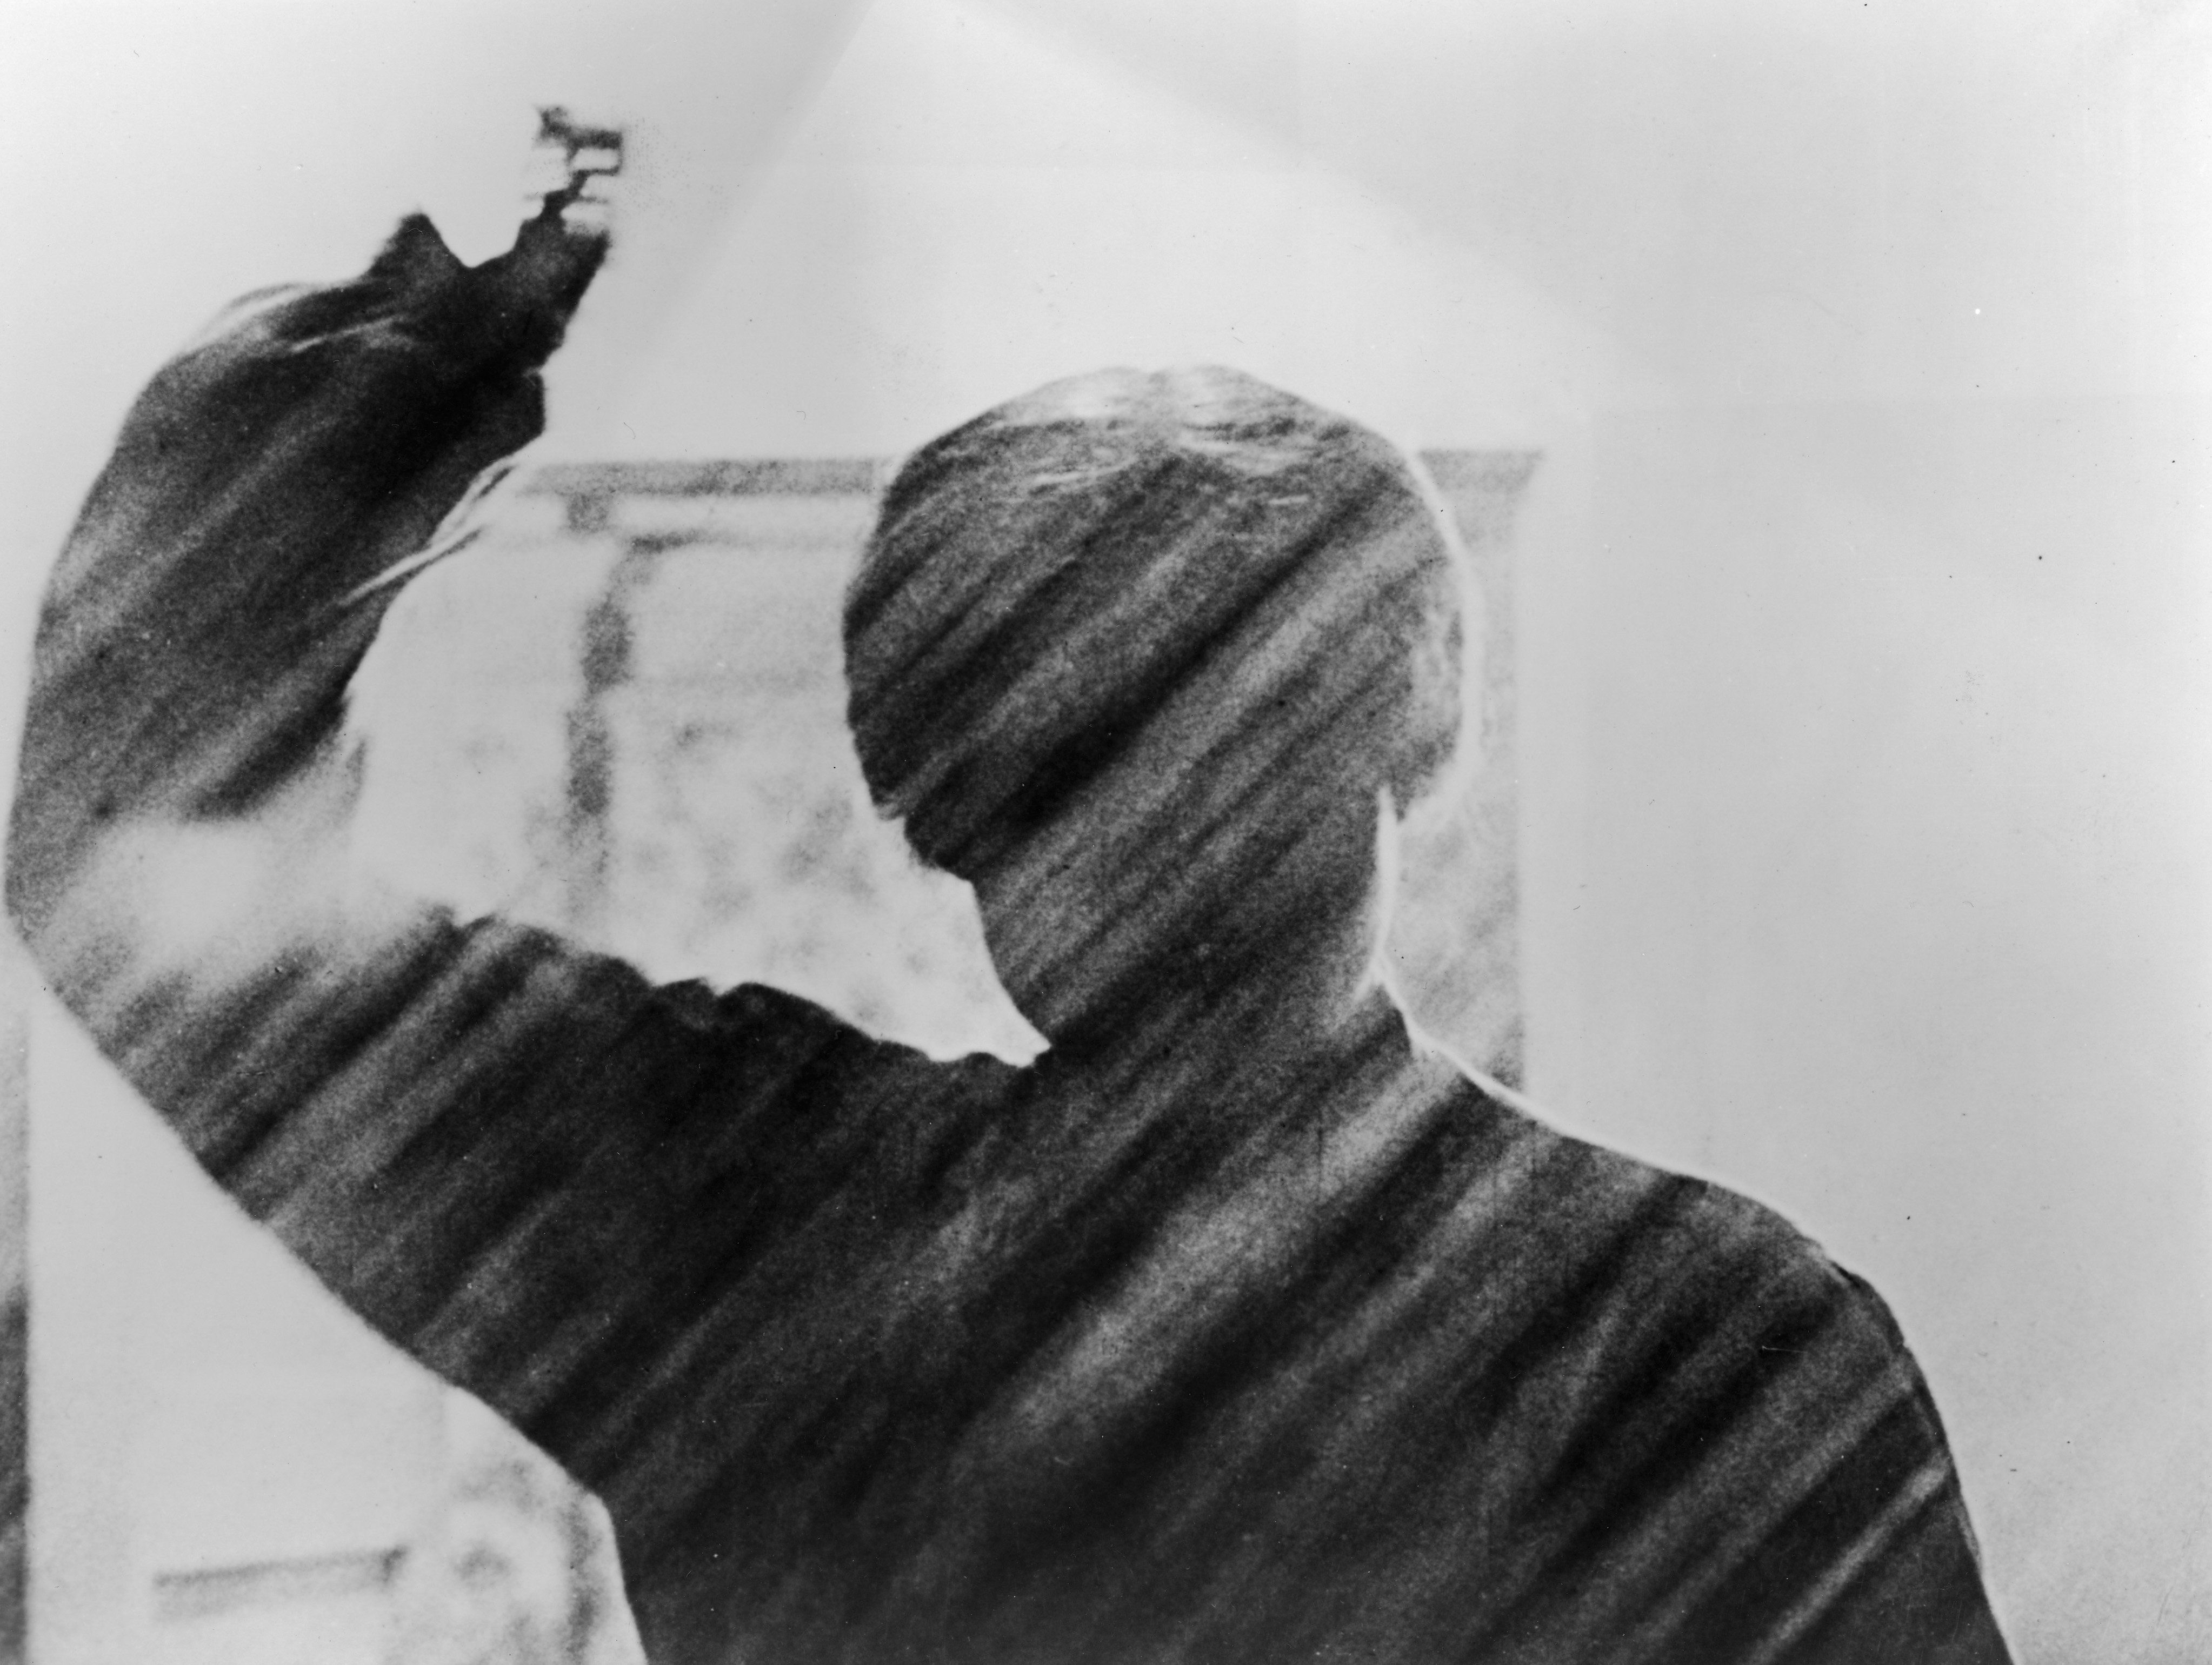 View of a silhouetted figure holding a knife in the famous shower scene from the film, 'Psycho,' directed by Alfred Hitchcock, 1960. (Photo by Paramount Pictures/Courtesy of Getty Images)